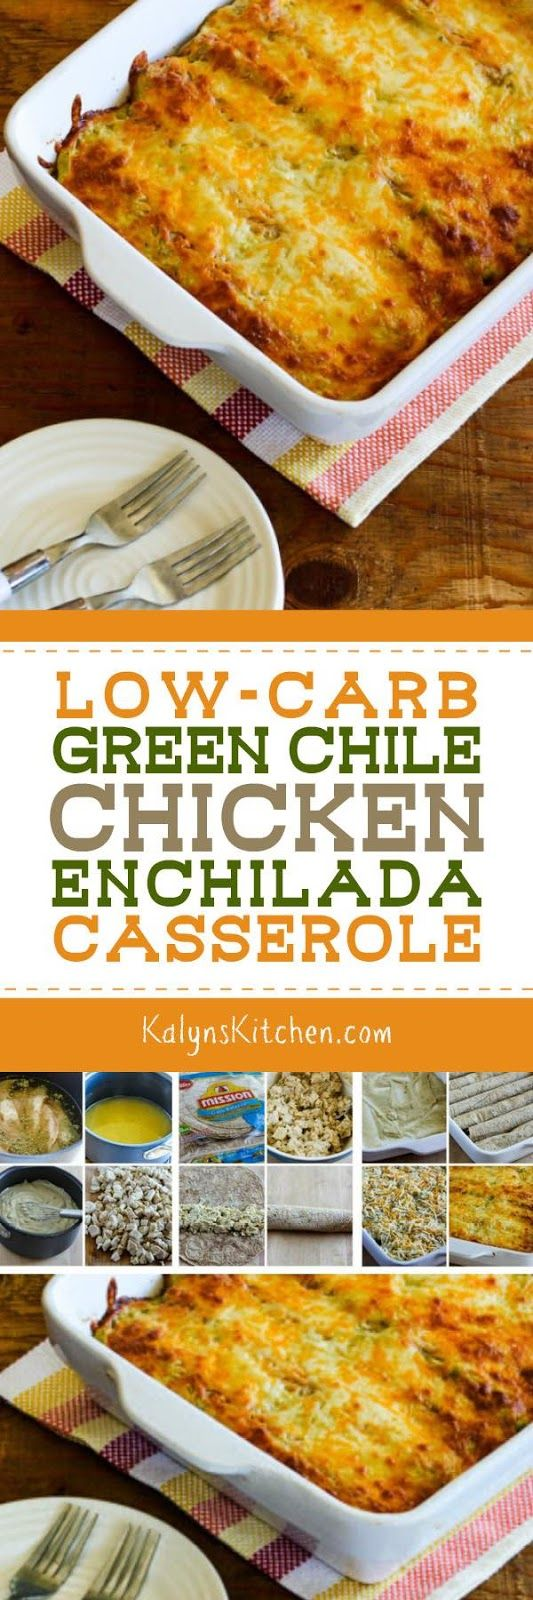 201 best Healthy Recipes images on Pinterest | Casserole ...